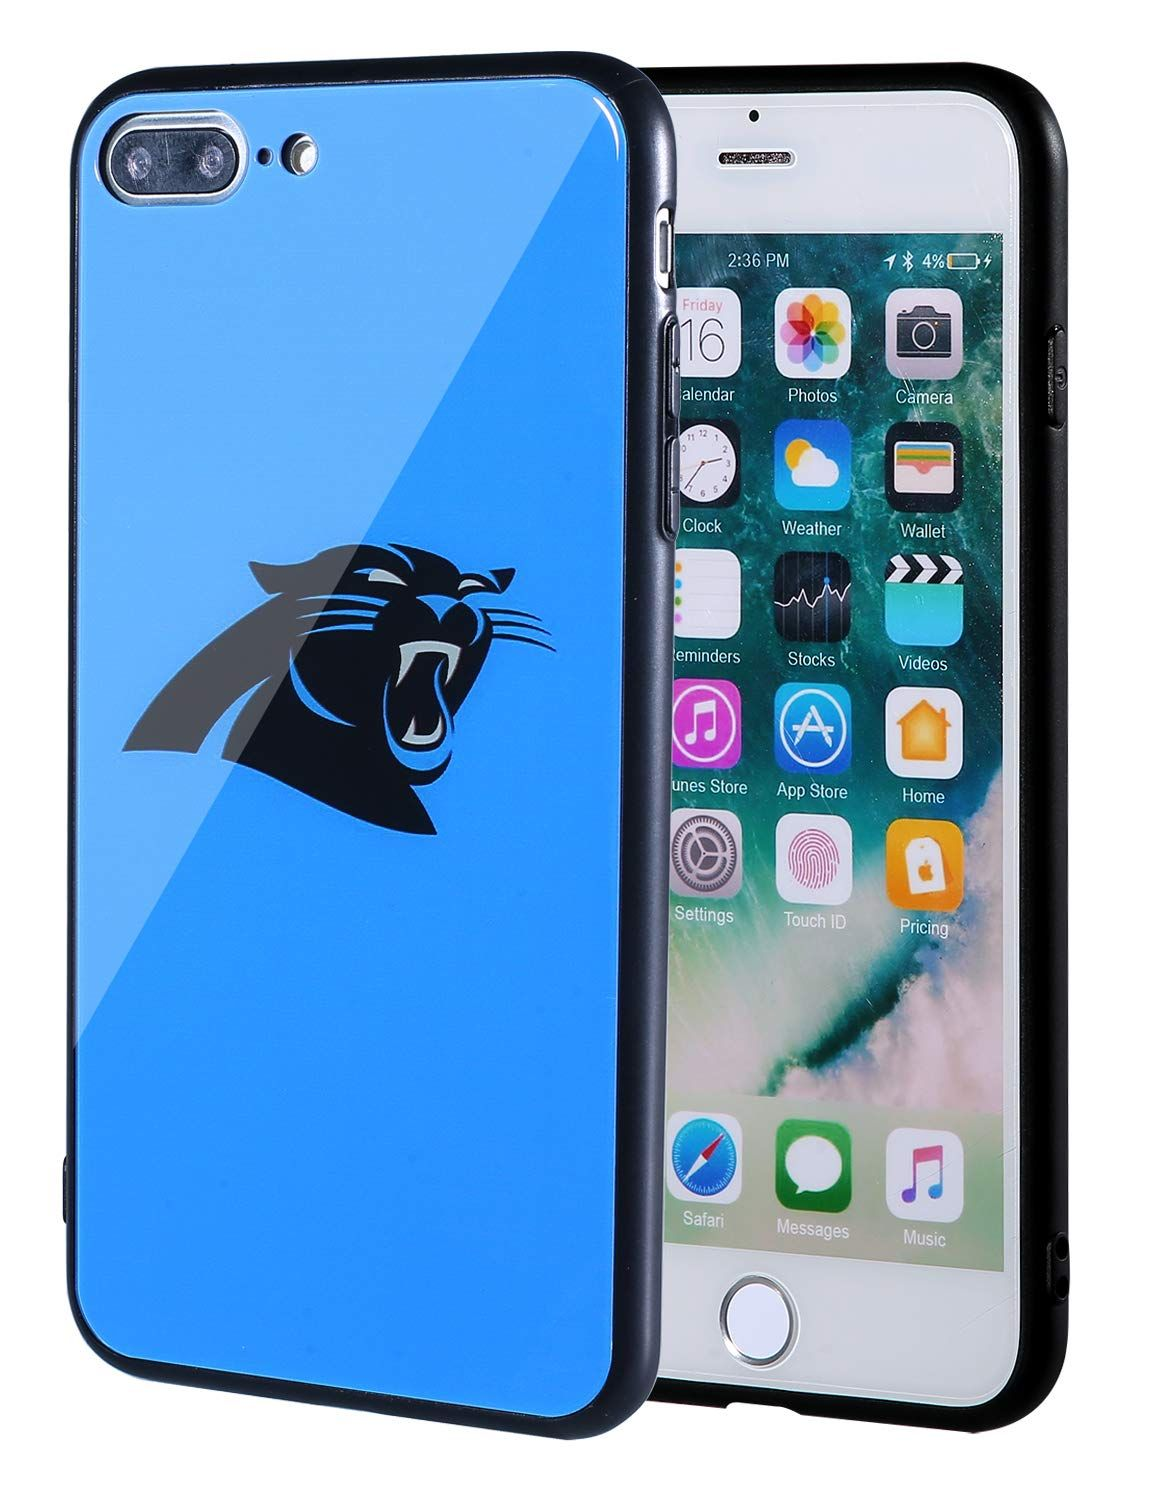 Sportula nfl phone case 9h tempered glass back cover